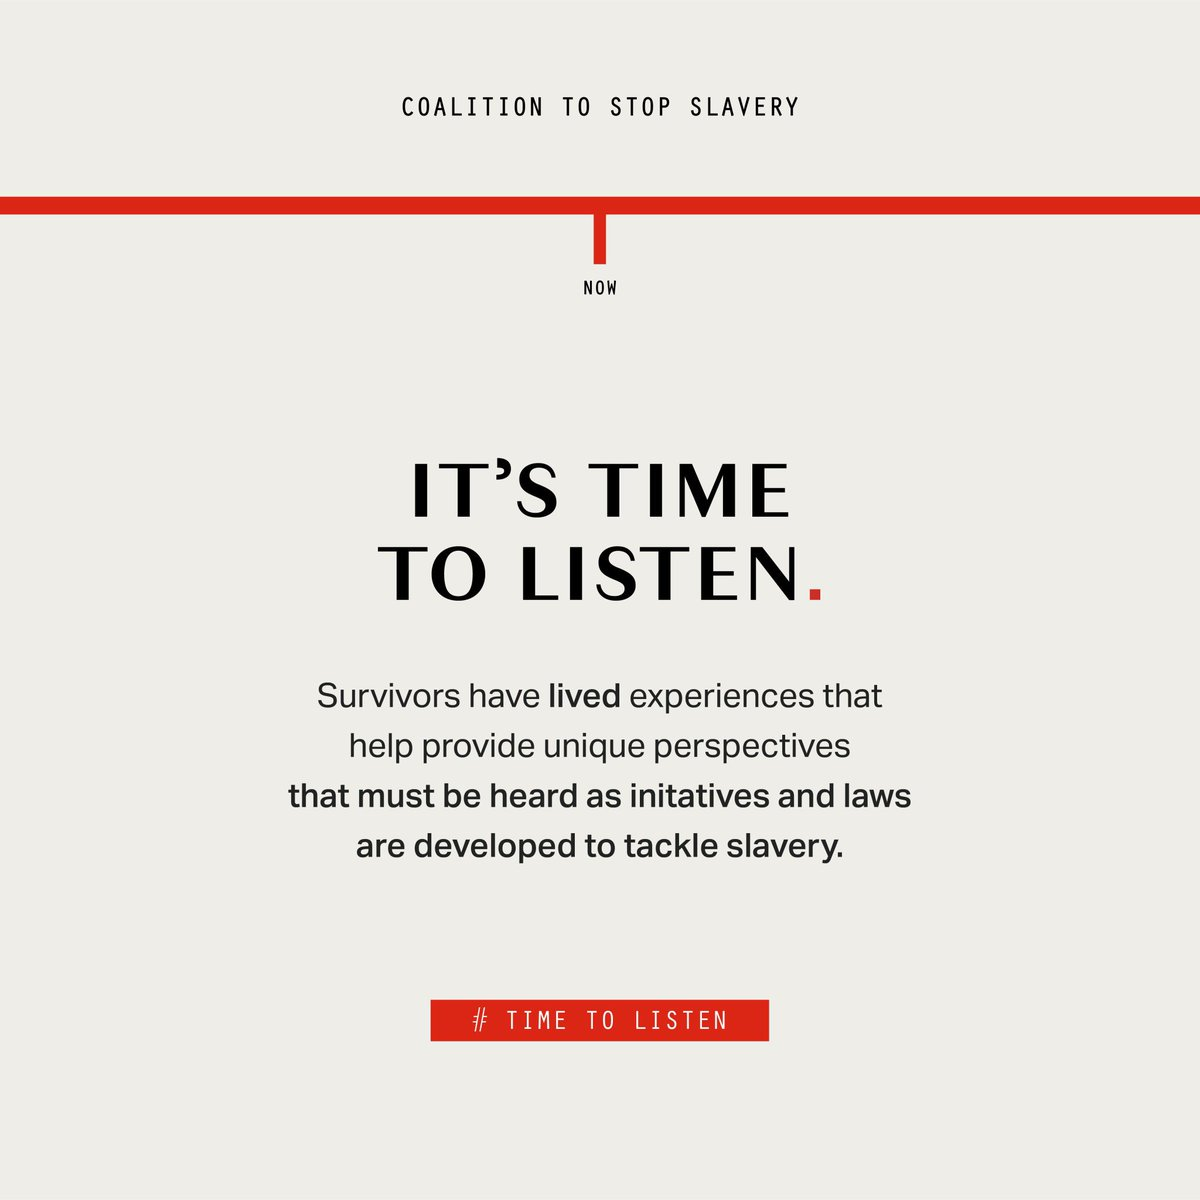 This campaign carries such an important message. Could not agree more with #coalitiontoendslavery that we cannot stop modern slavery or any other form of exploitation without listening to the experiences of survivors #AntiSlaveryDay2021 #TimetoListen